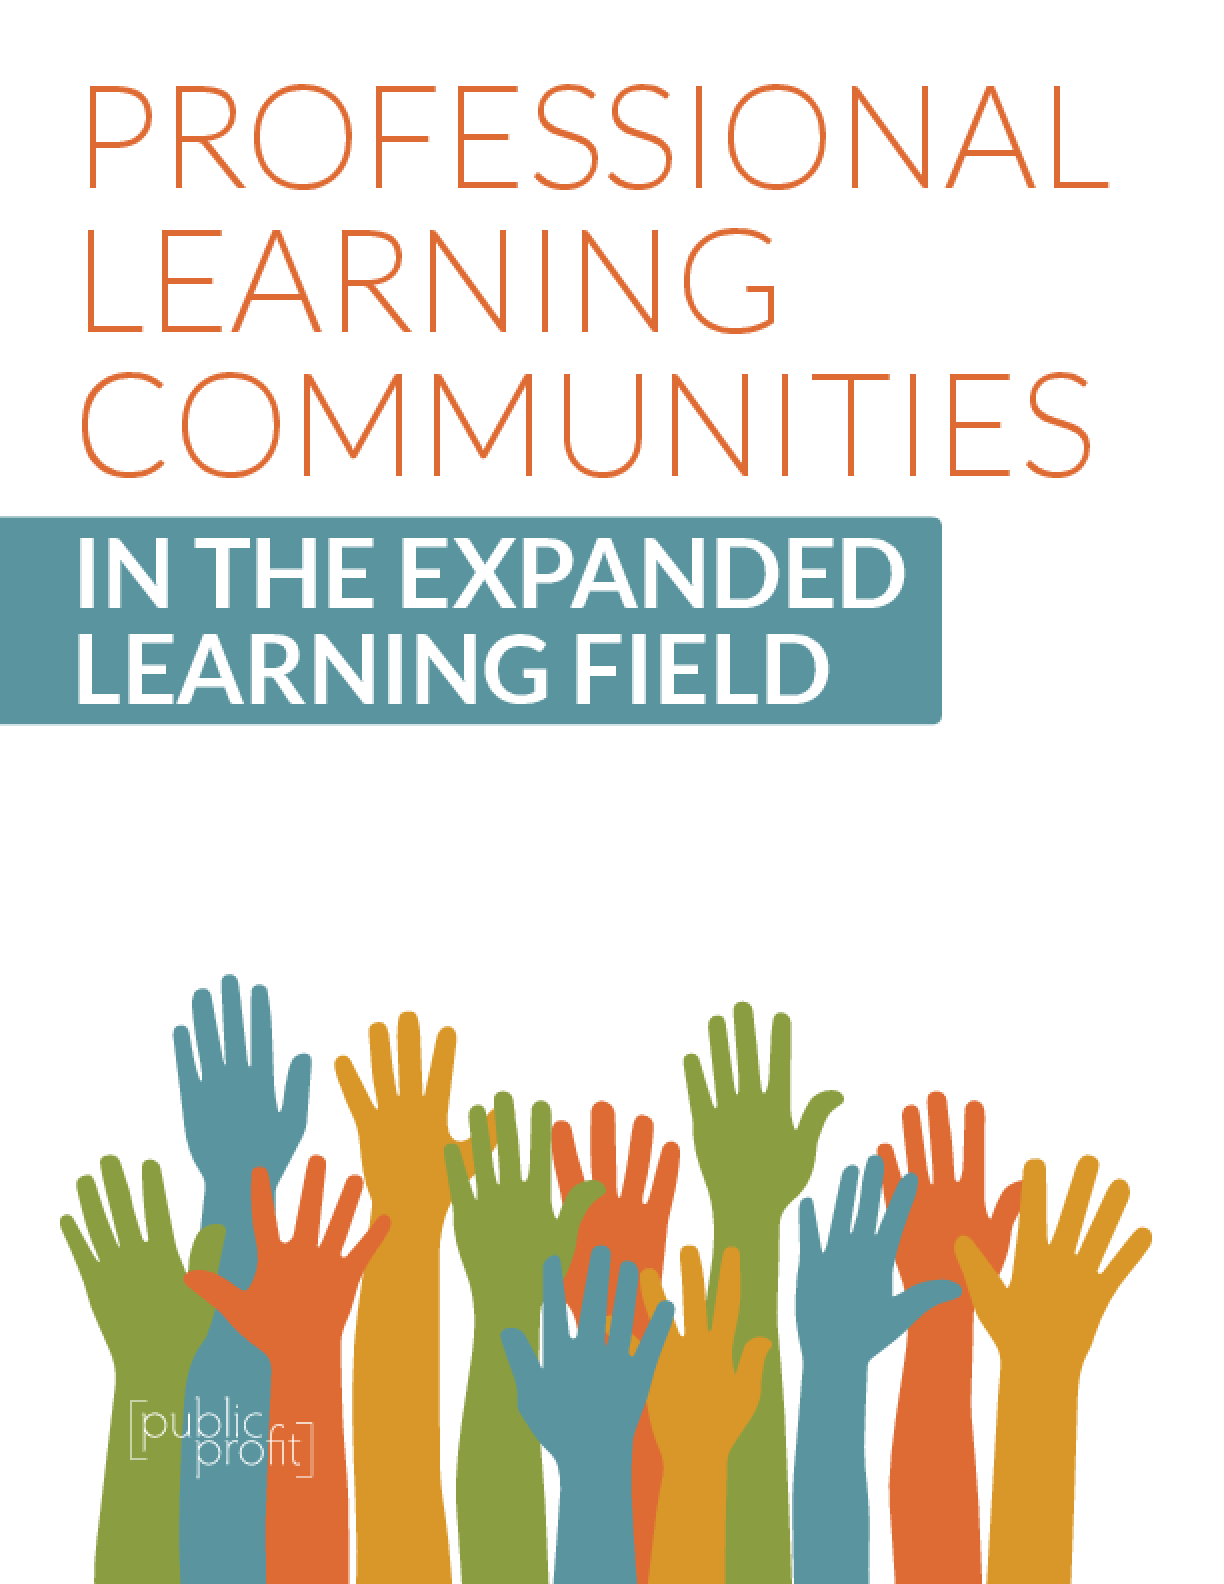 Professional Learning Communities in the Expanded Learning Field